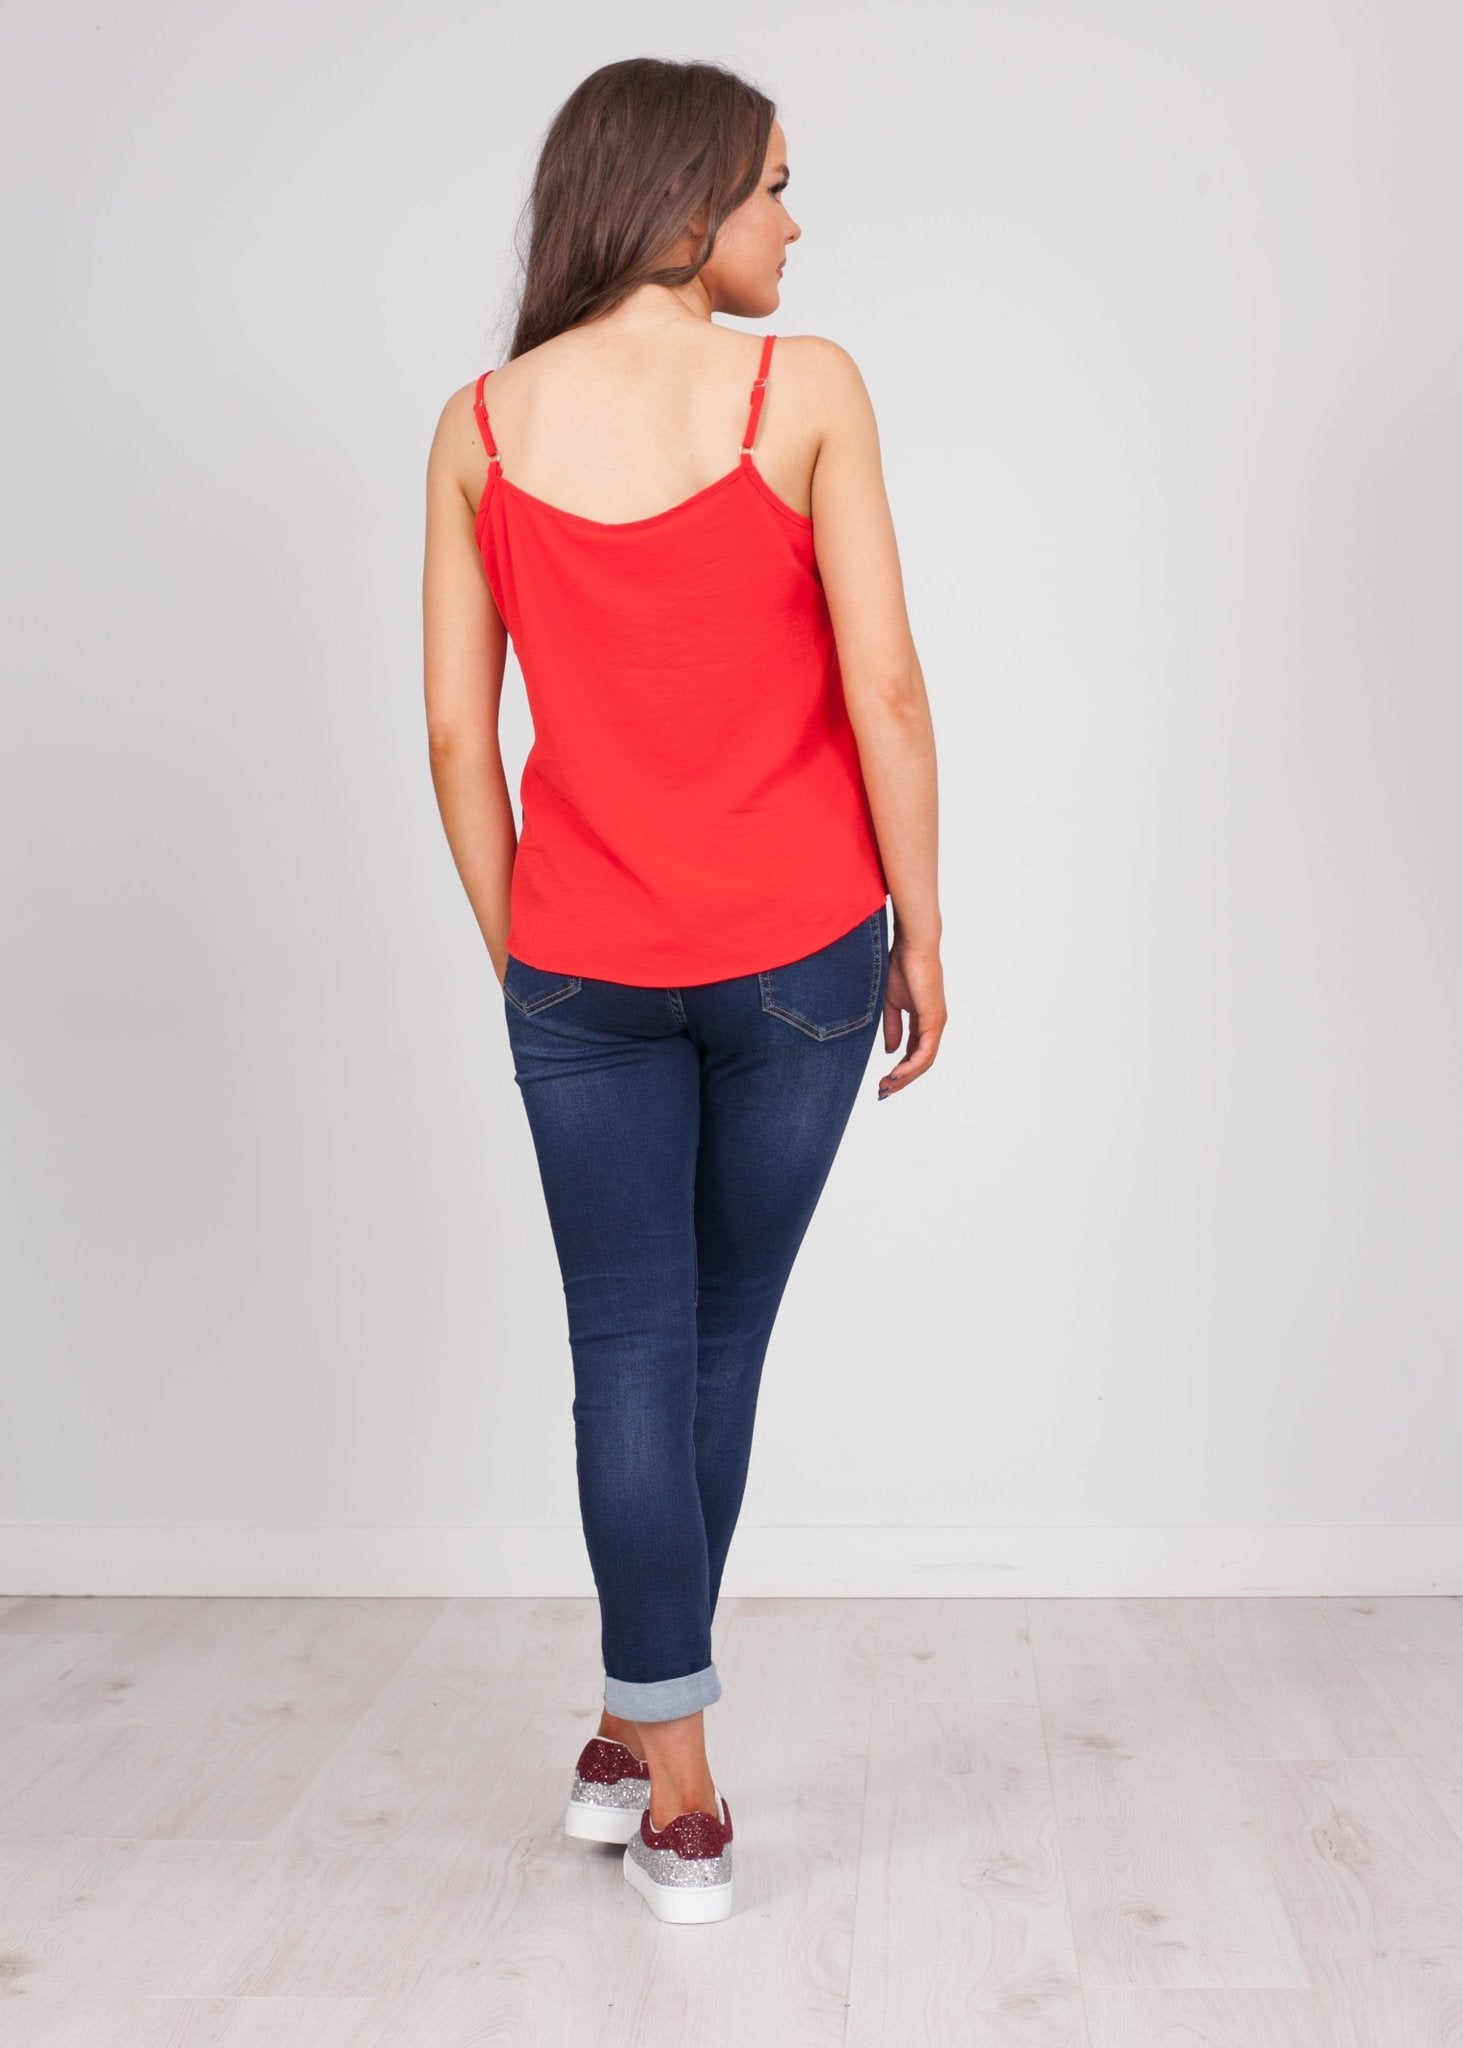 Emilia Red Lace Cami with Buttons - The Walk in Wardrobe